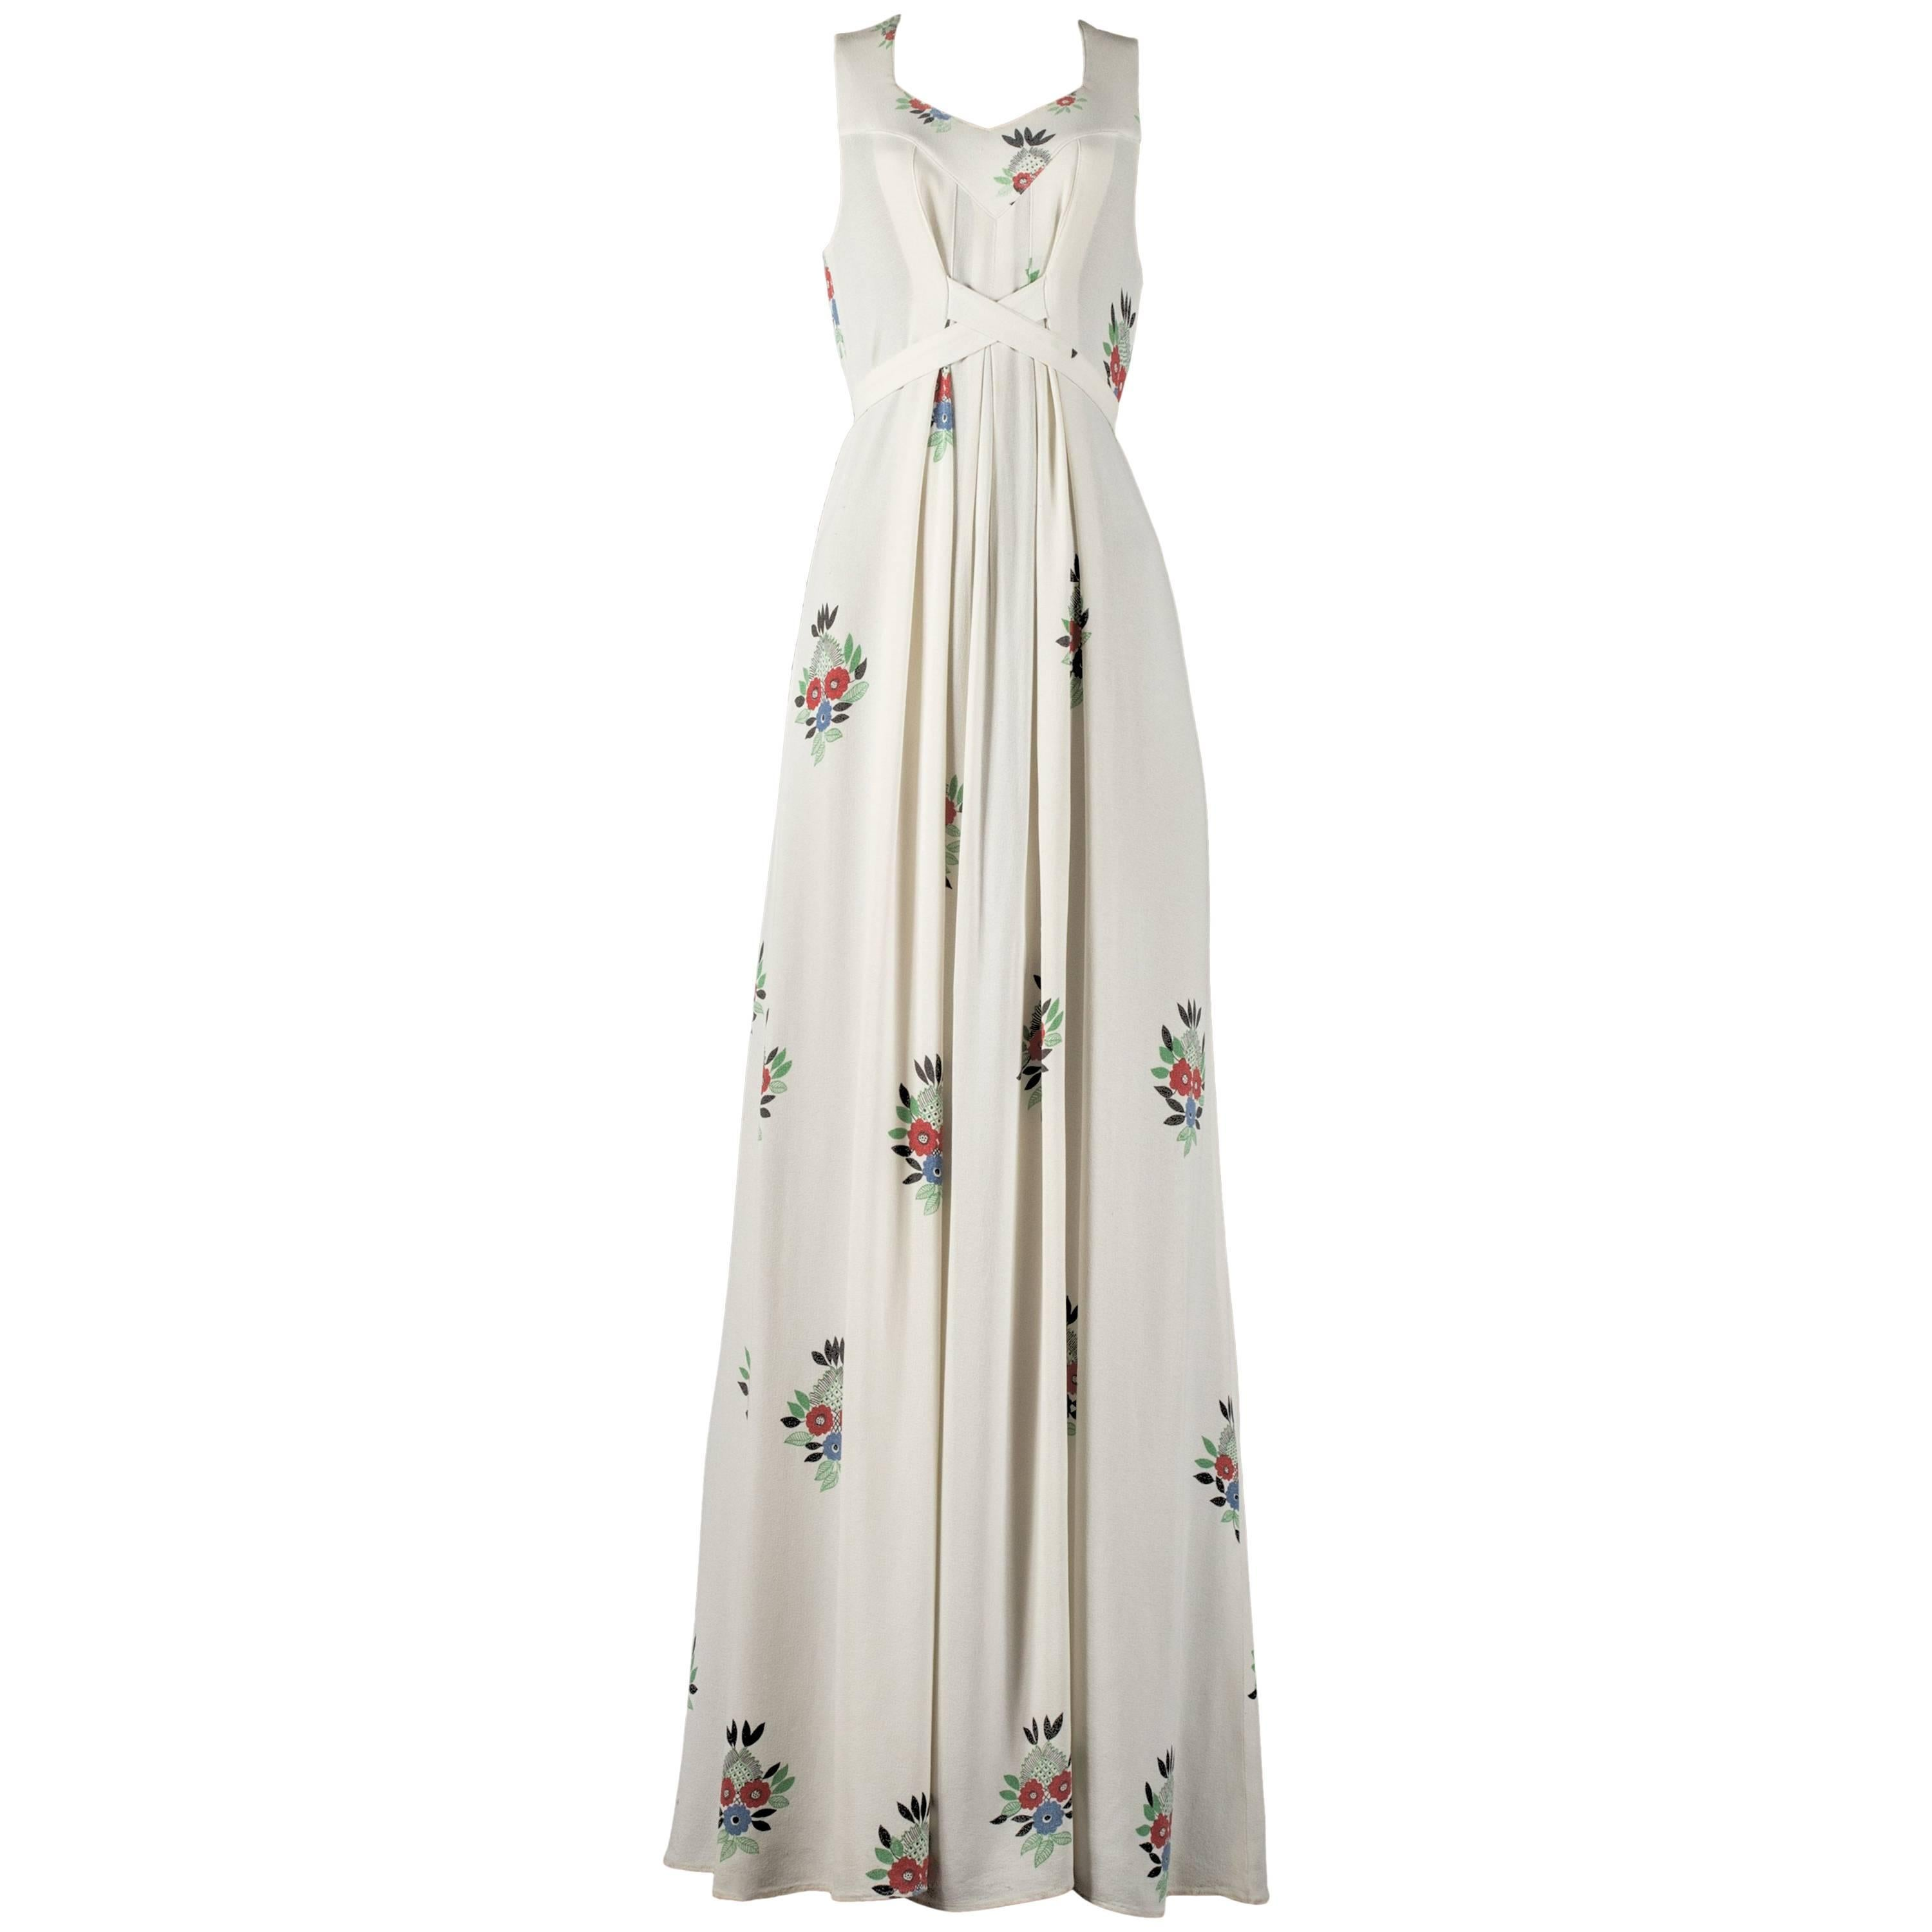 Celia birtwell maxi dress